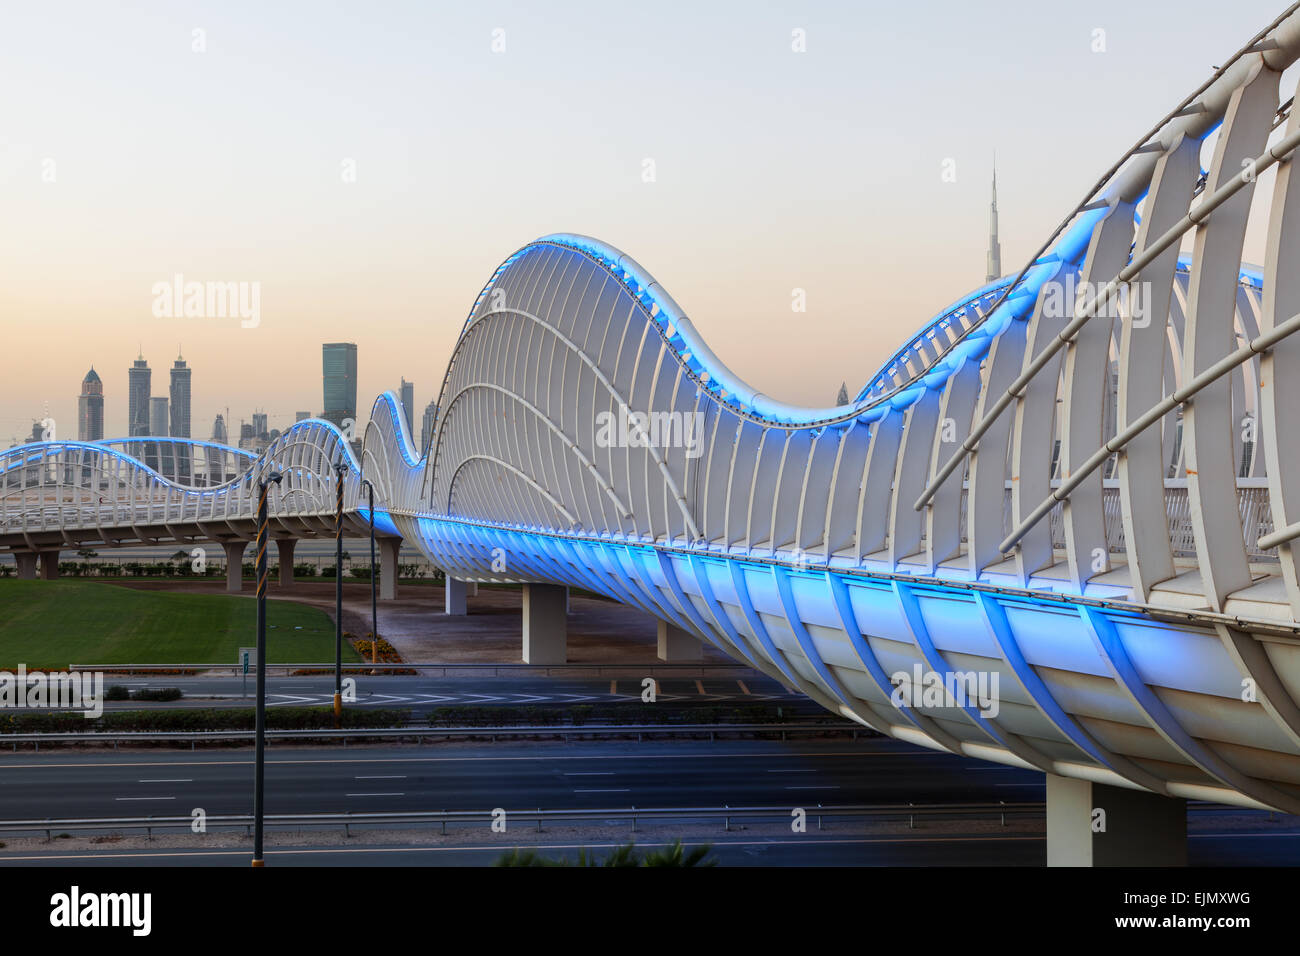 Meydan bridge in Dubai lluminated at night. December 13, 2014 in Dubai, United Arab Emirates - Stock Image